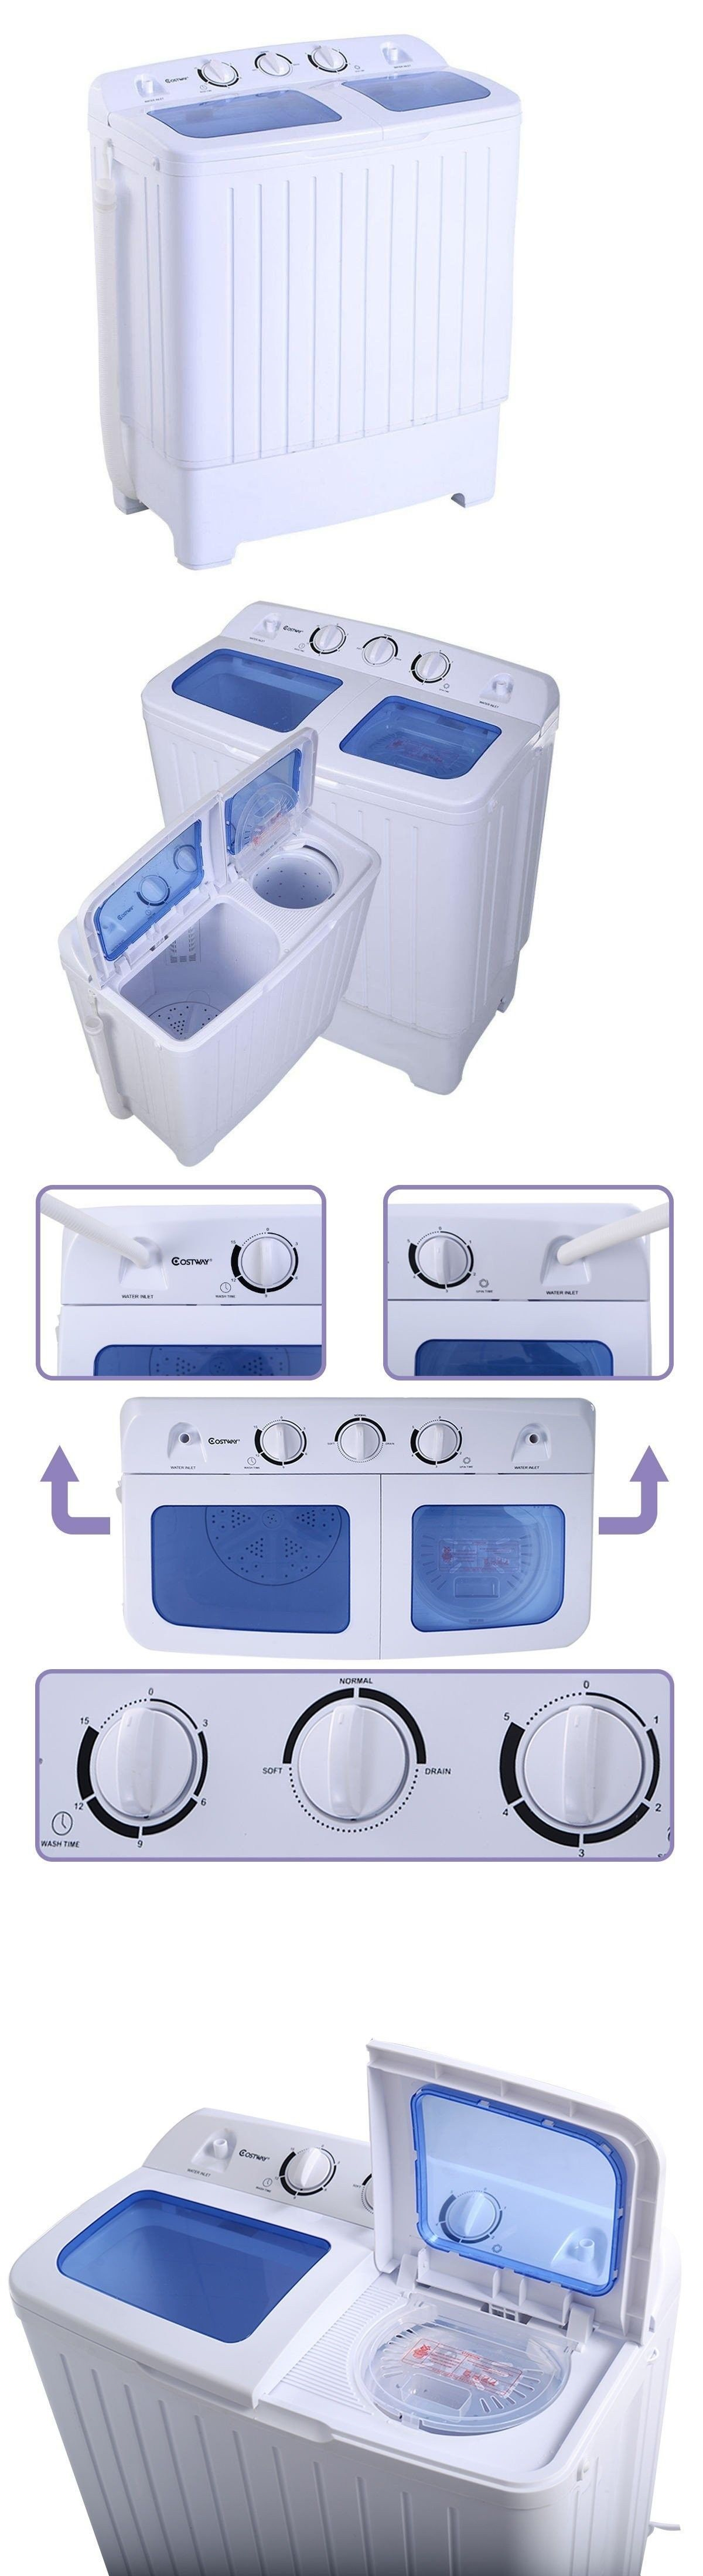 Washer and Dryer Sets 71257: Apartment Washer And Dryer ...